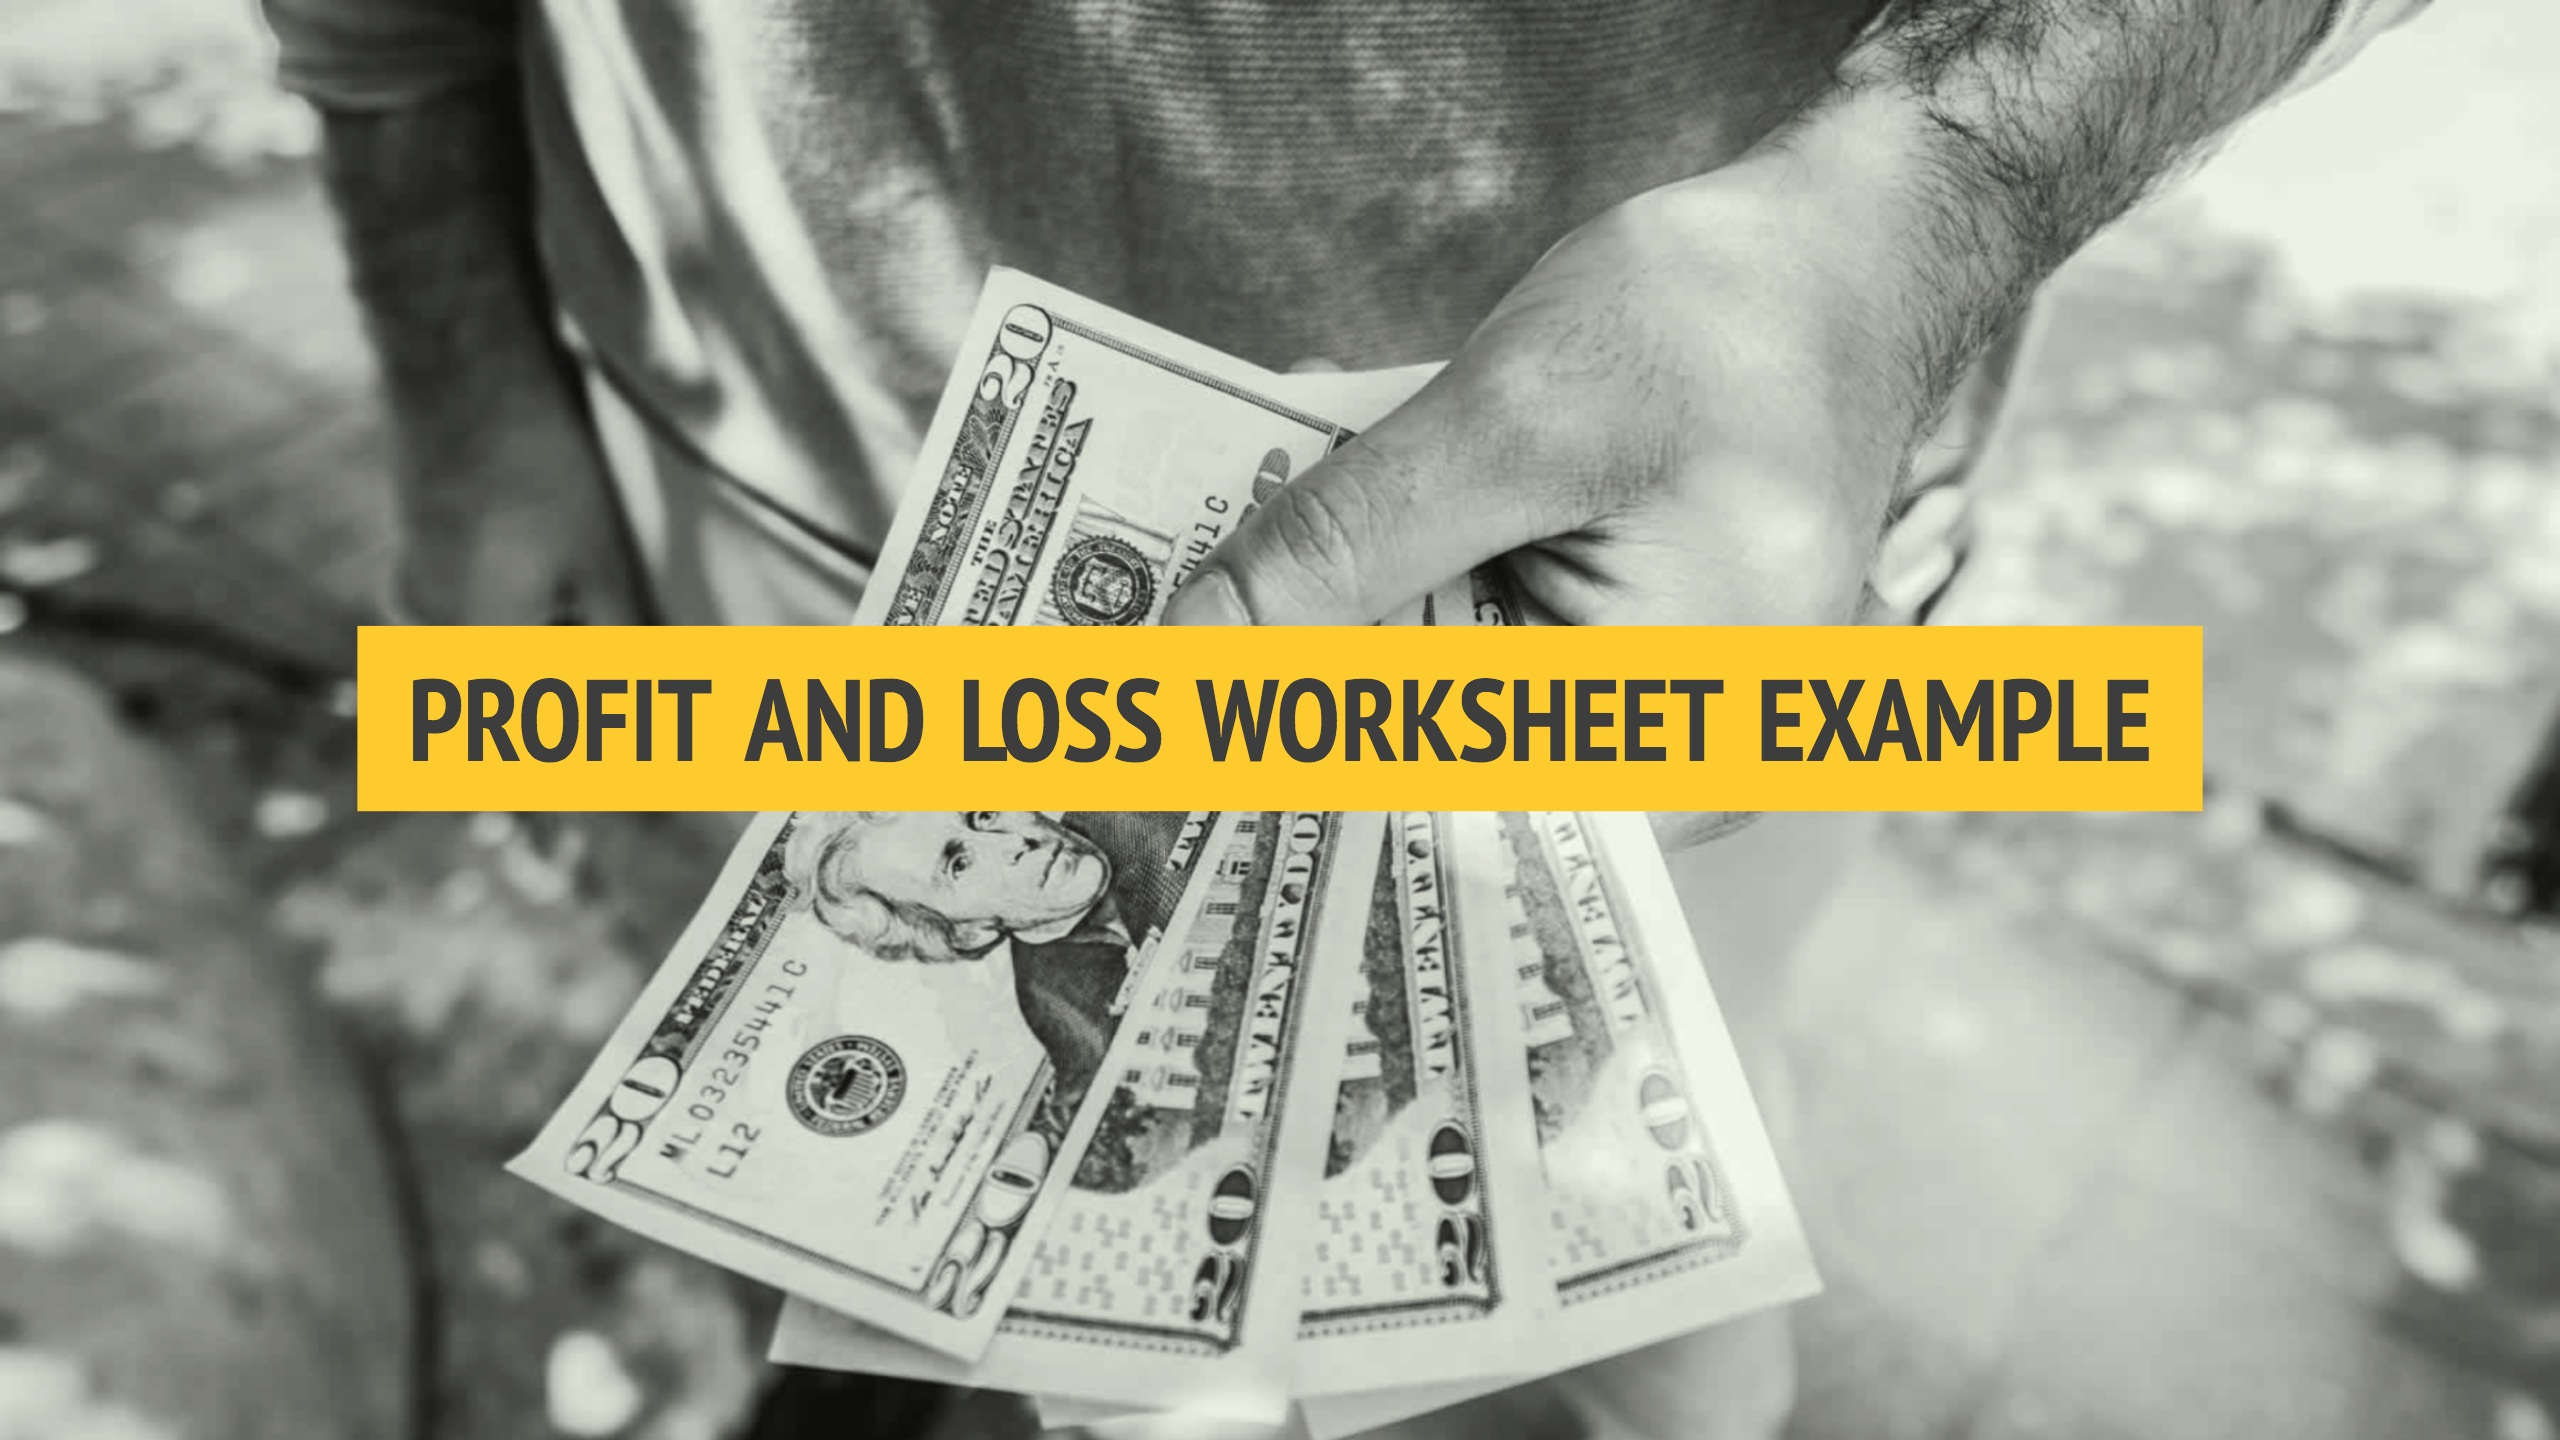 Profit And Loss Worksheet Example